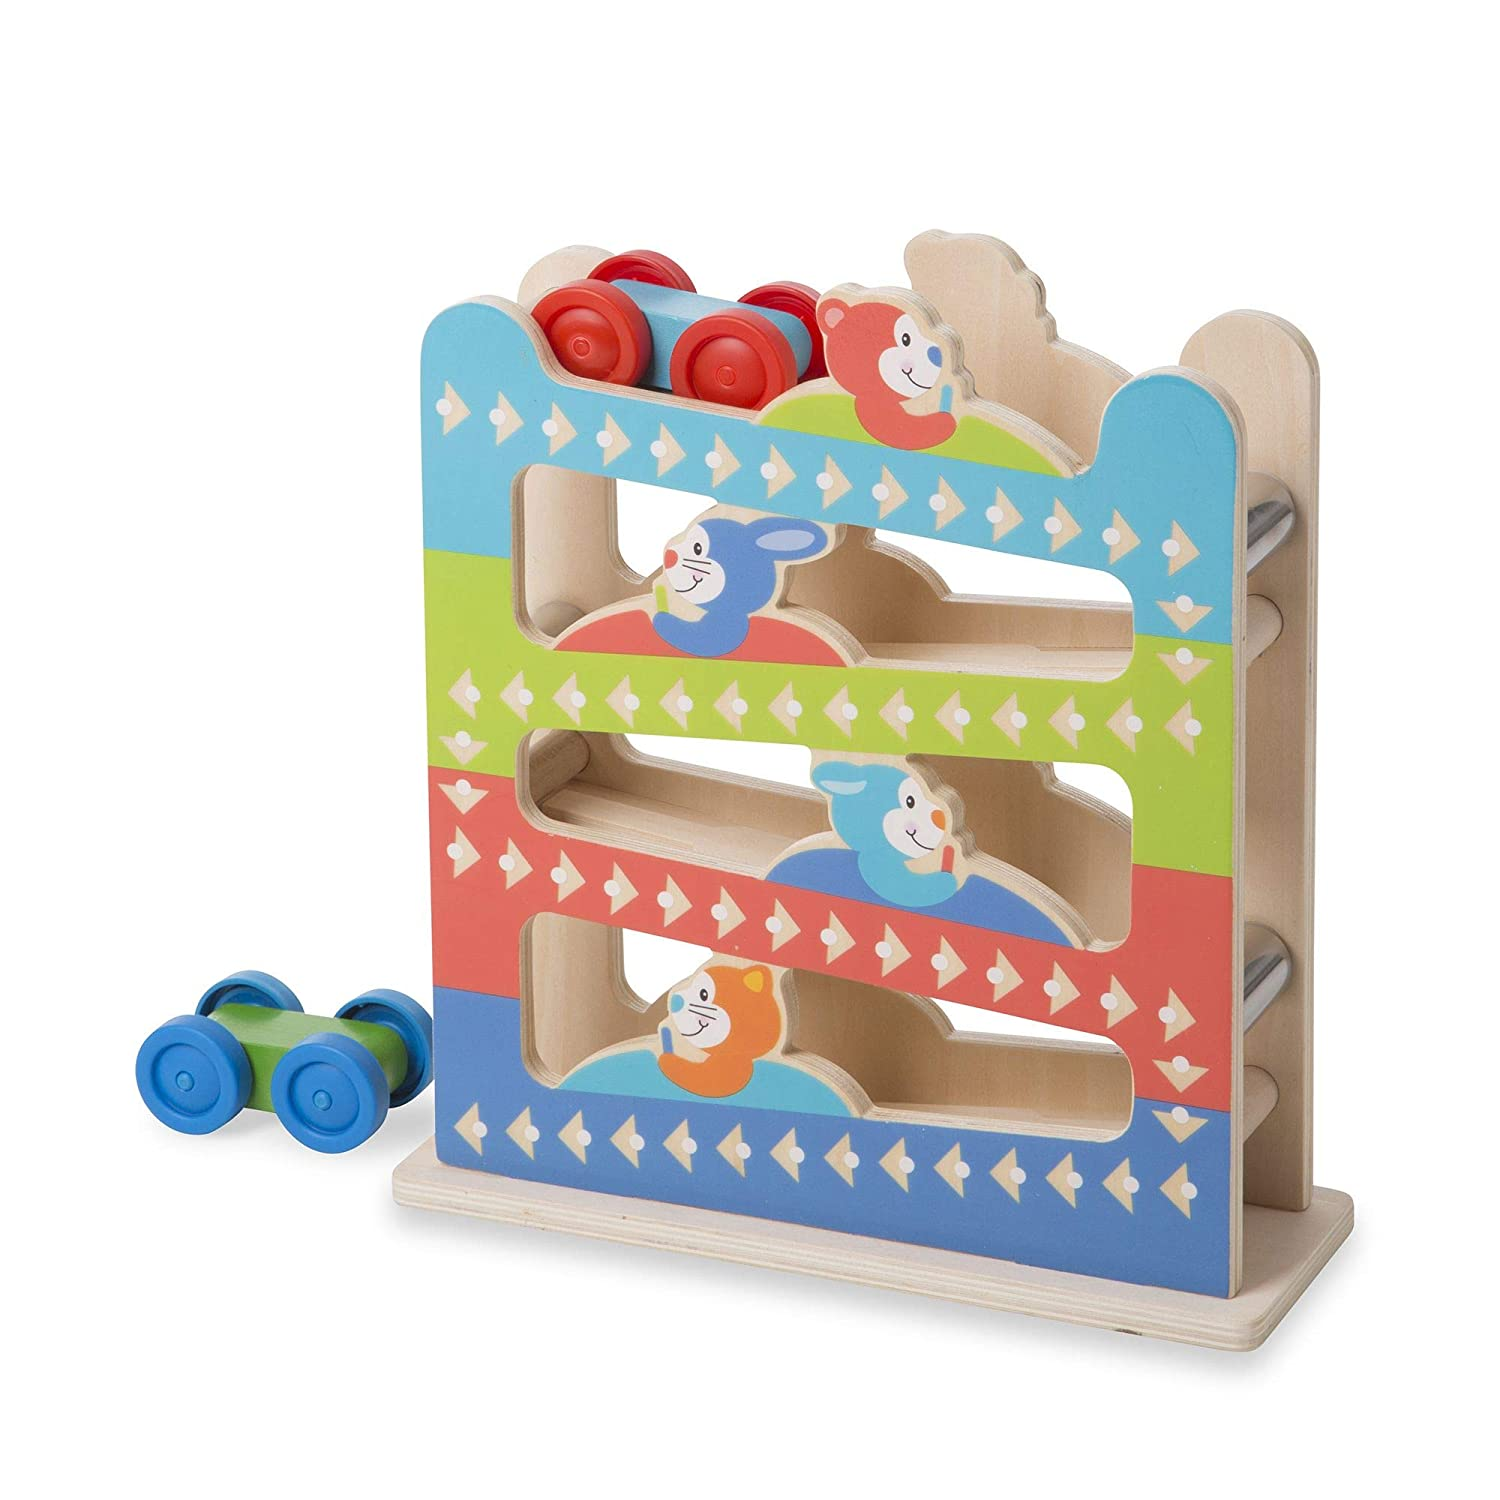 "Melissa Doug First Play Roll Ring Ramp Tower Cars and Vehicles 2 Wooden Cars 12.625"" H x 4.375"" W x 11.125"" L"